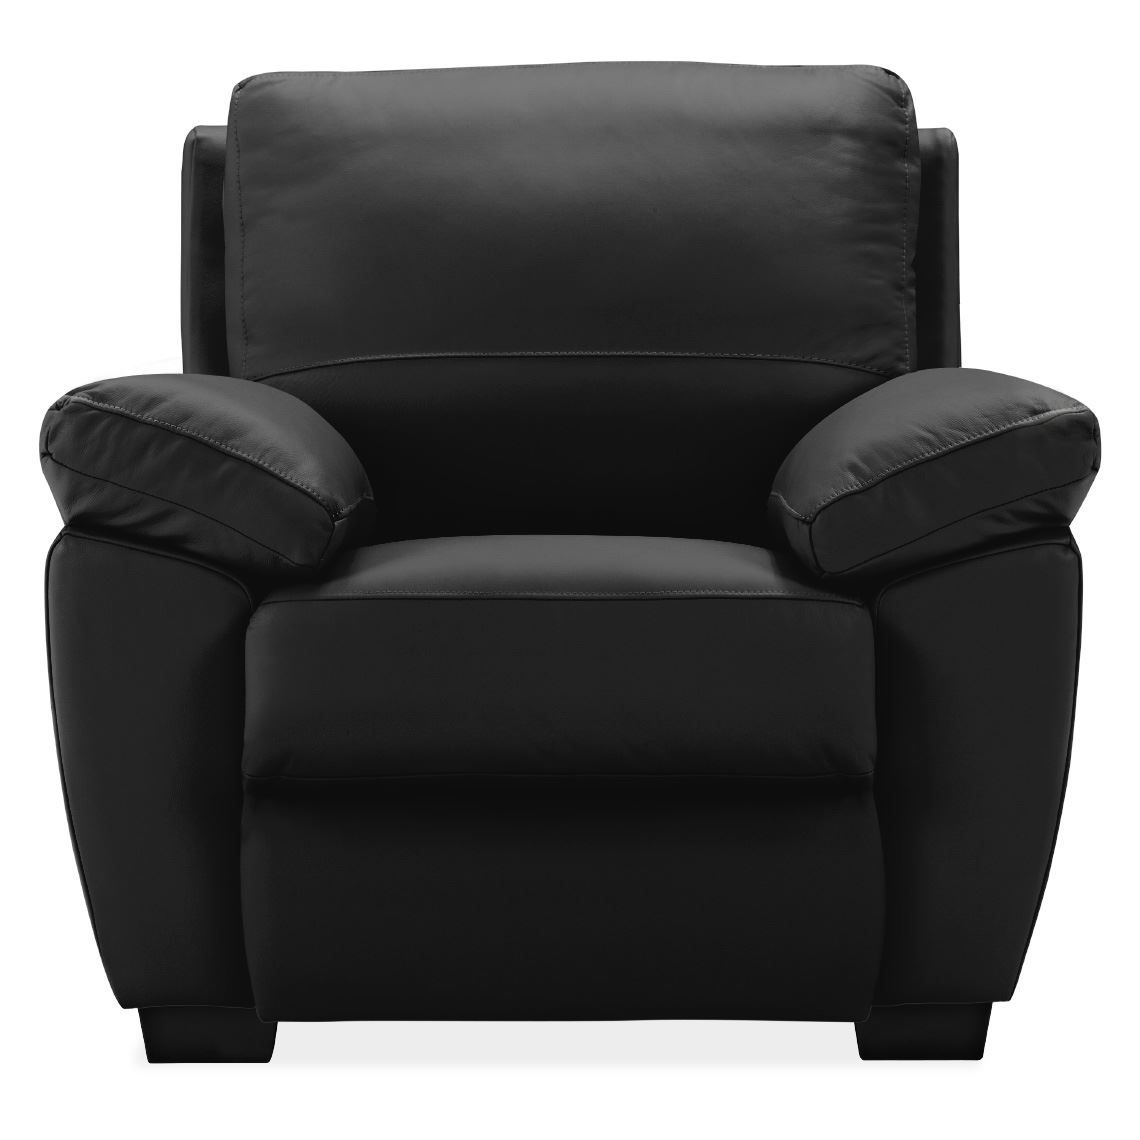 Lucas Recliner Leather Electric Recliner Armchair Armchair